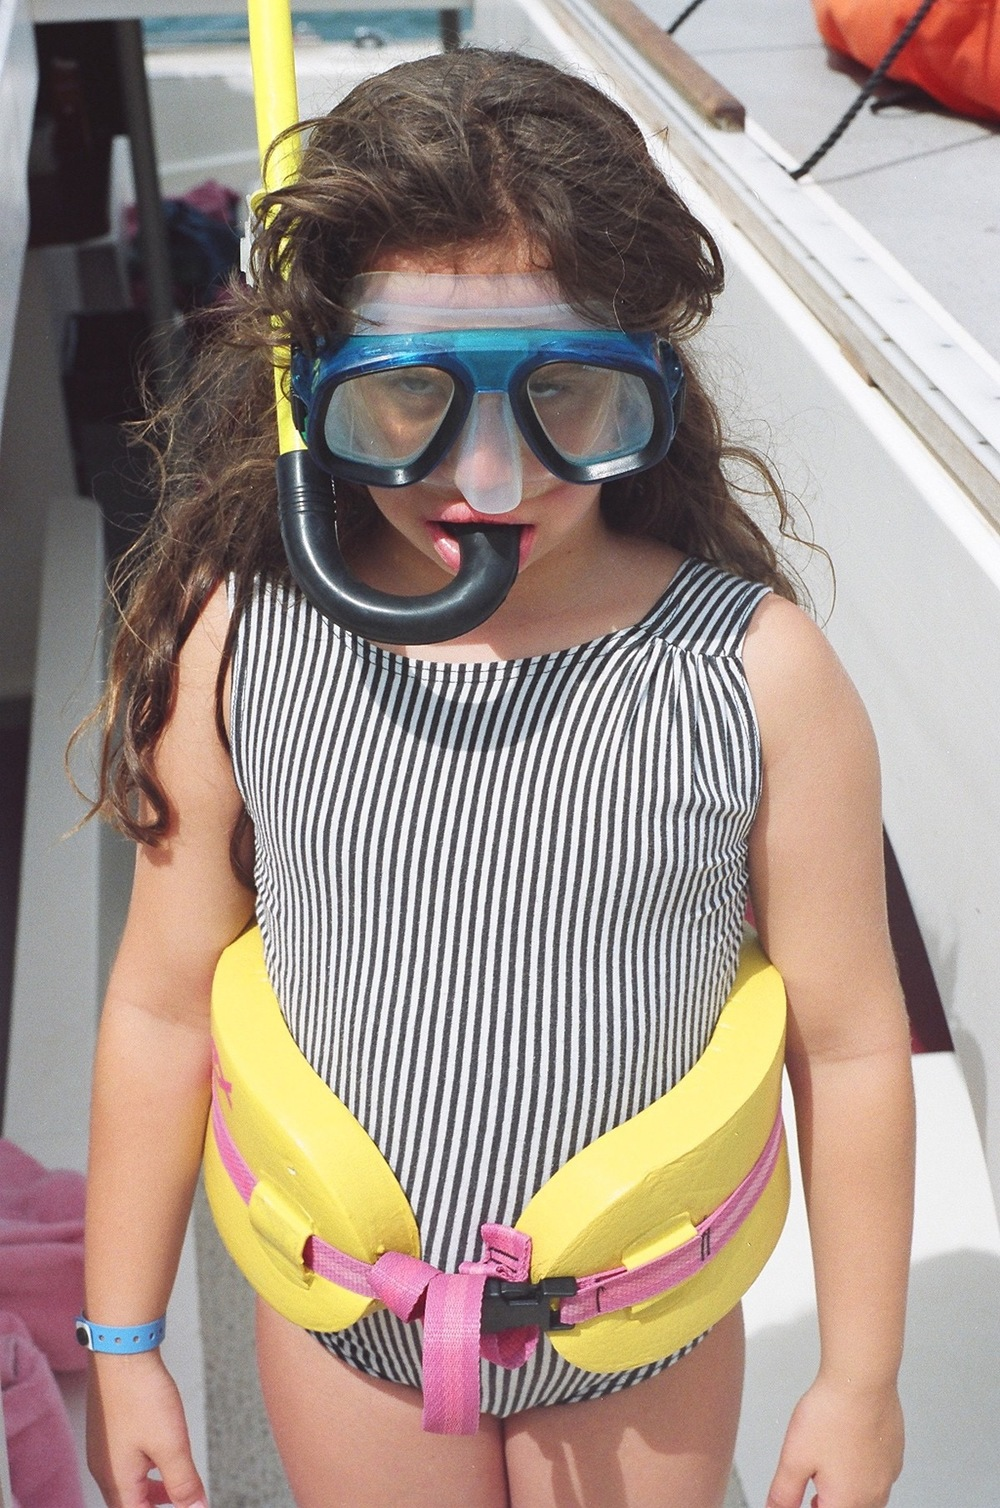 Lizy as a girl throwing major shade as she gets ready for some snorkeling.